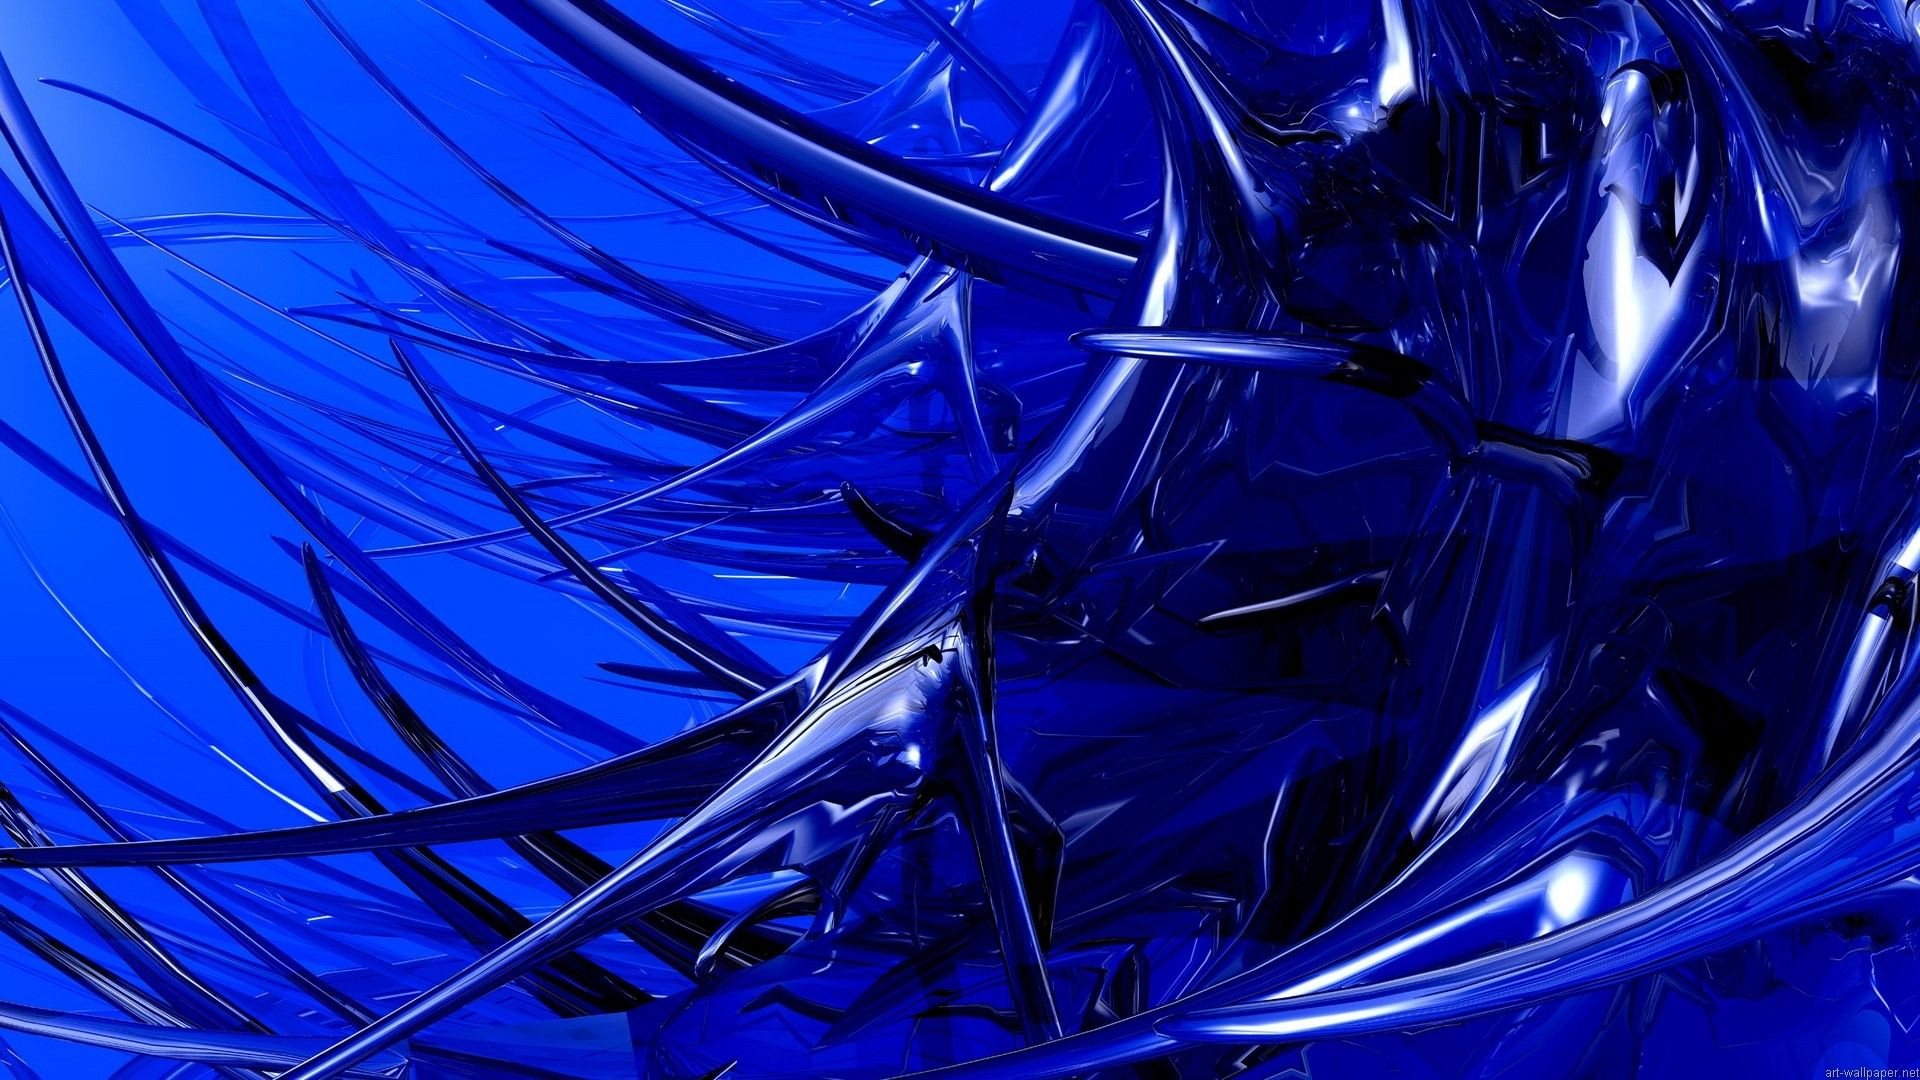 Undefined Blue Wallpaper Hd 53 Wallpapers Adorable Wallpapers Abstract Wallpaper Spring Desktop Wallpaper Abstract